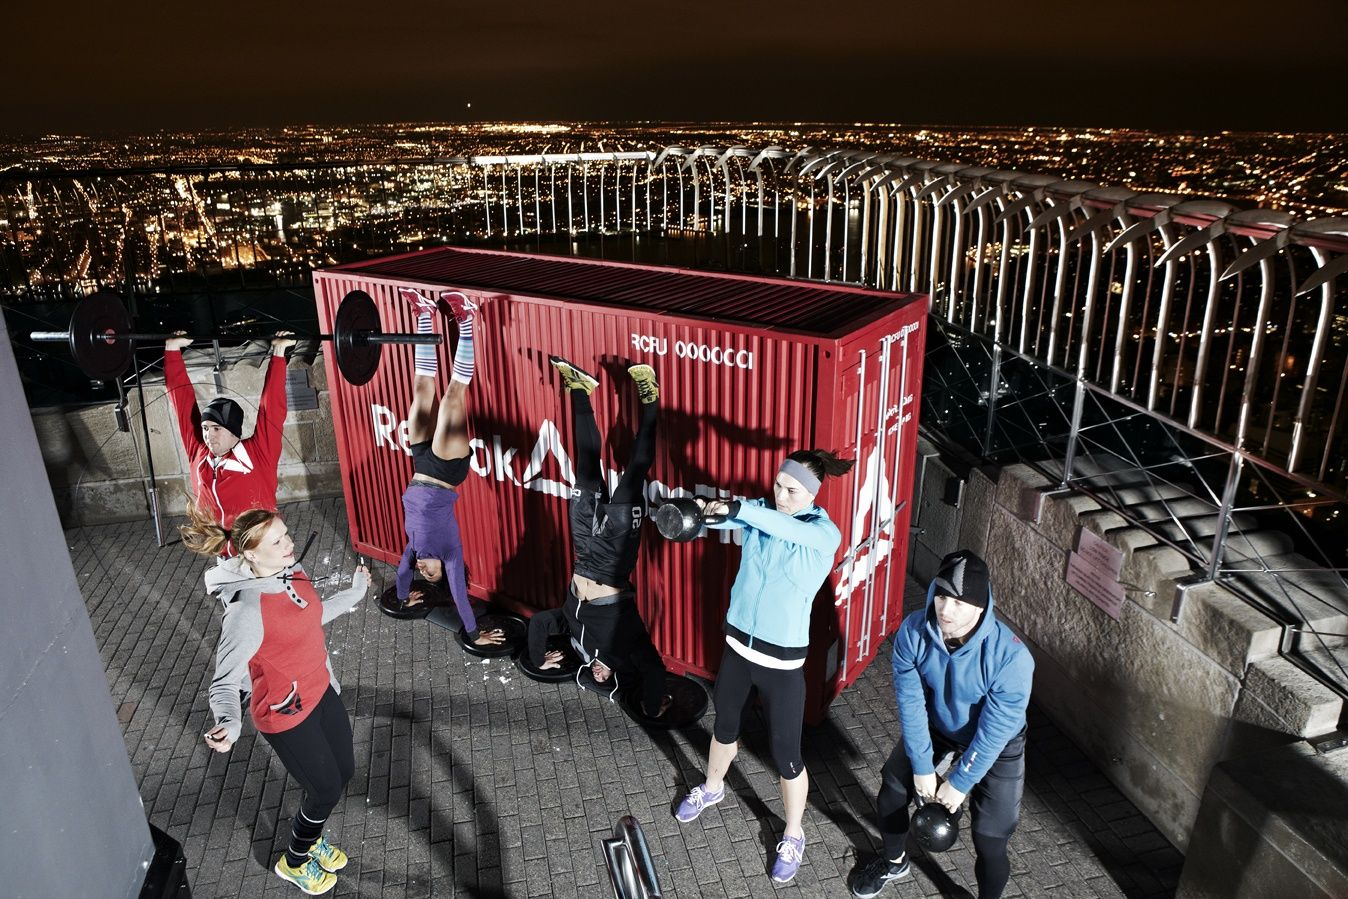 Reebok Stages Spectacular CrossFit Workout Atop Empire